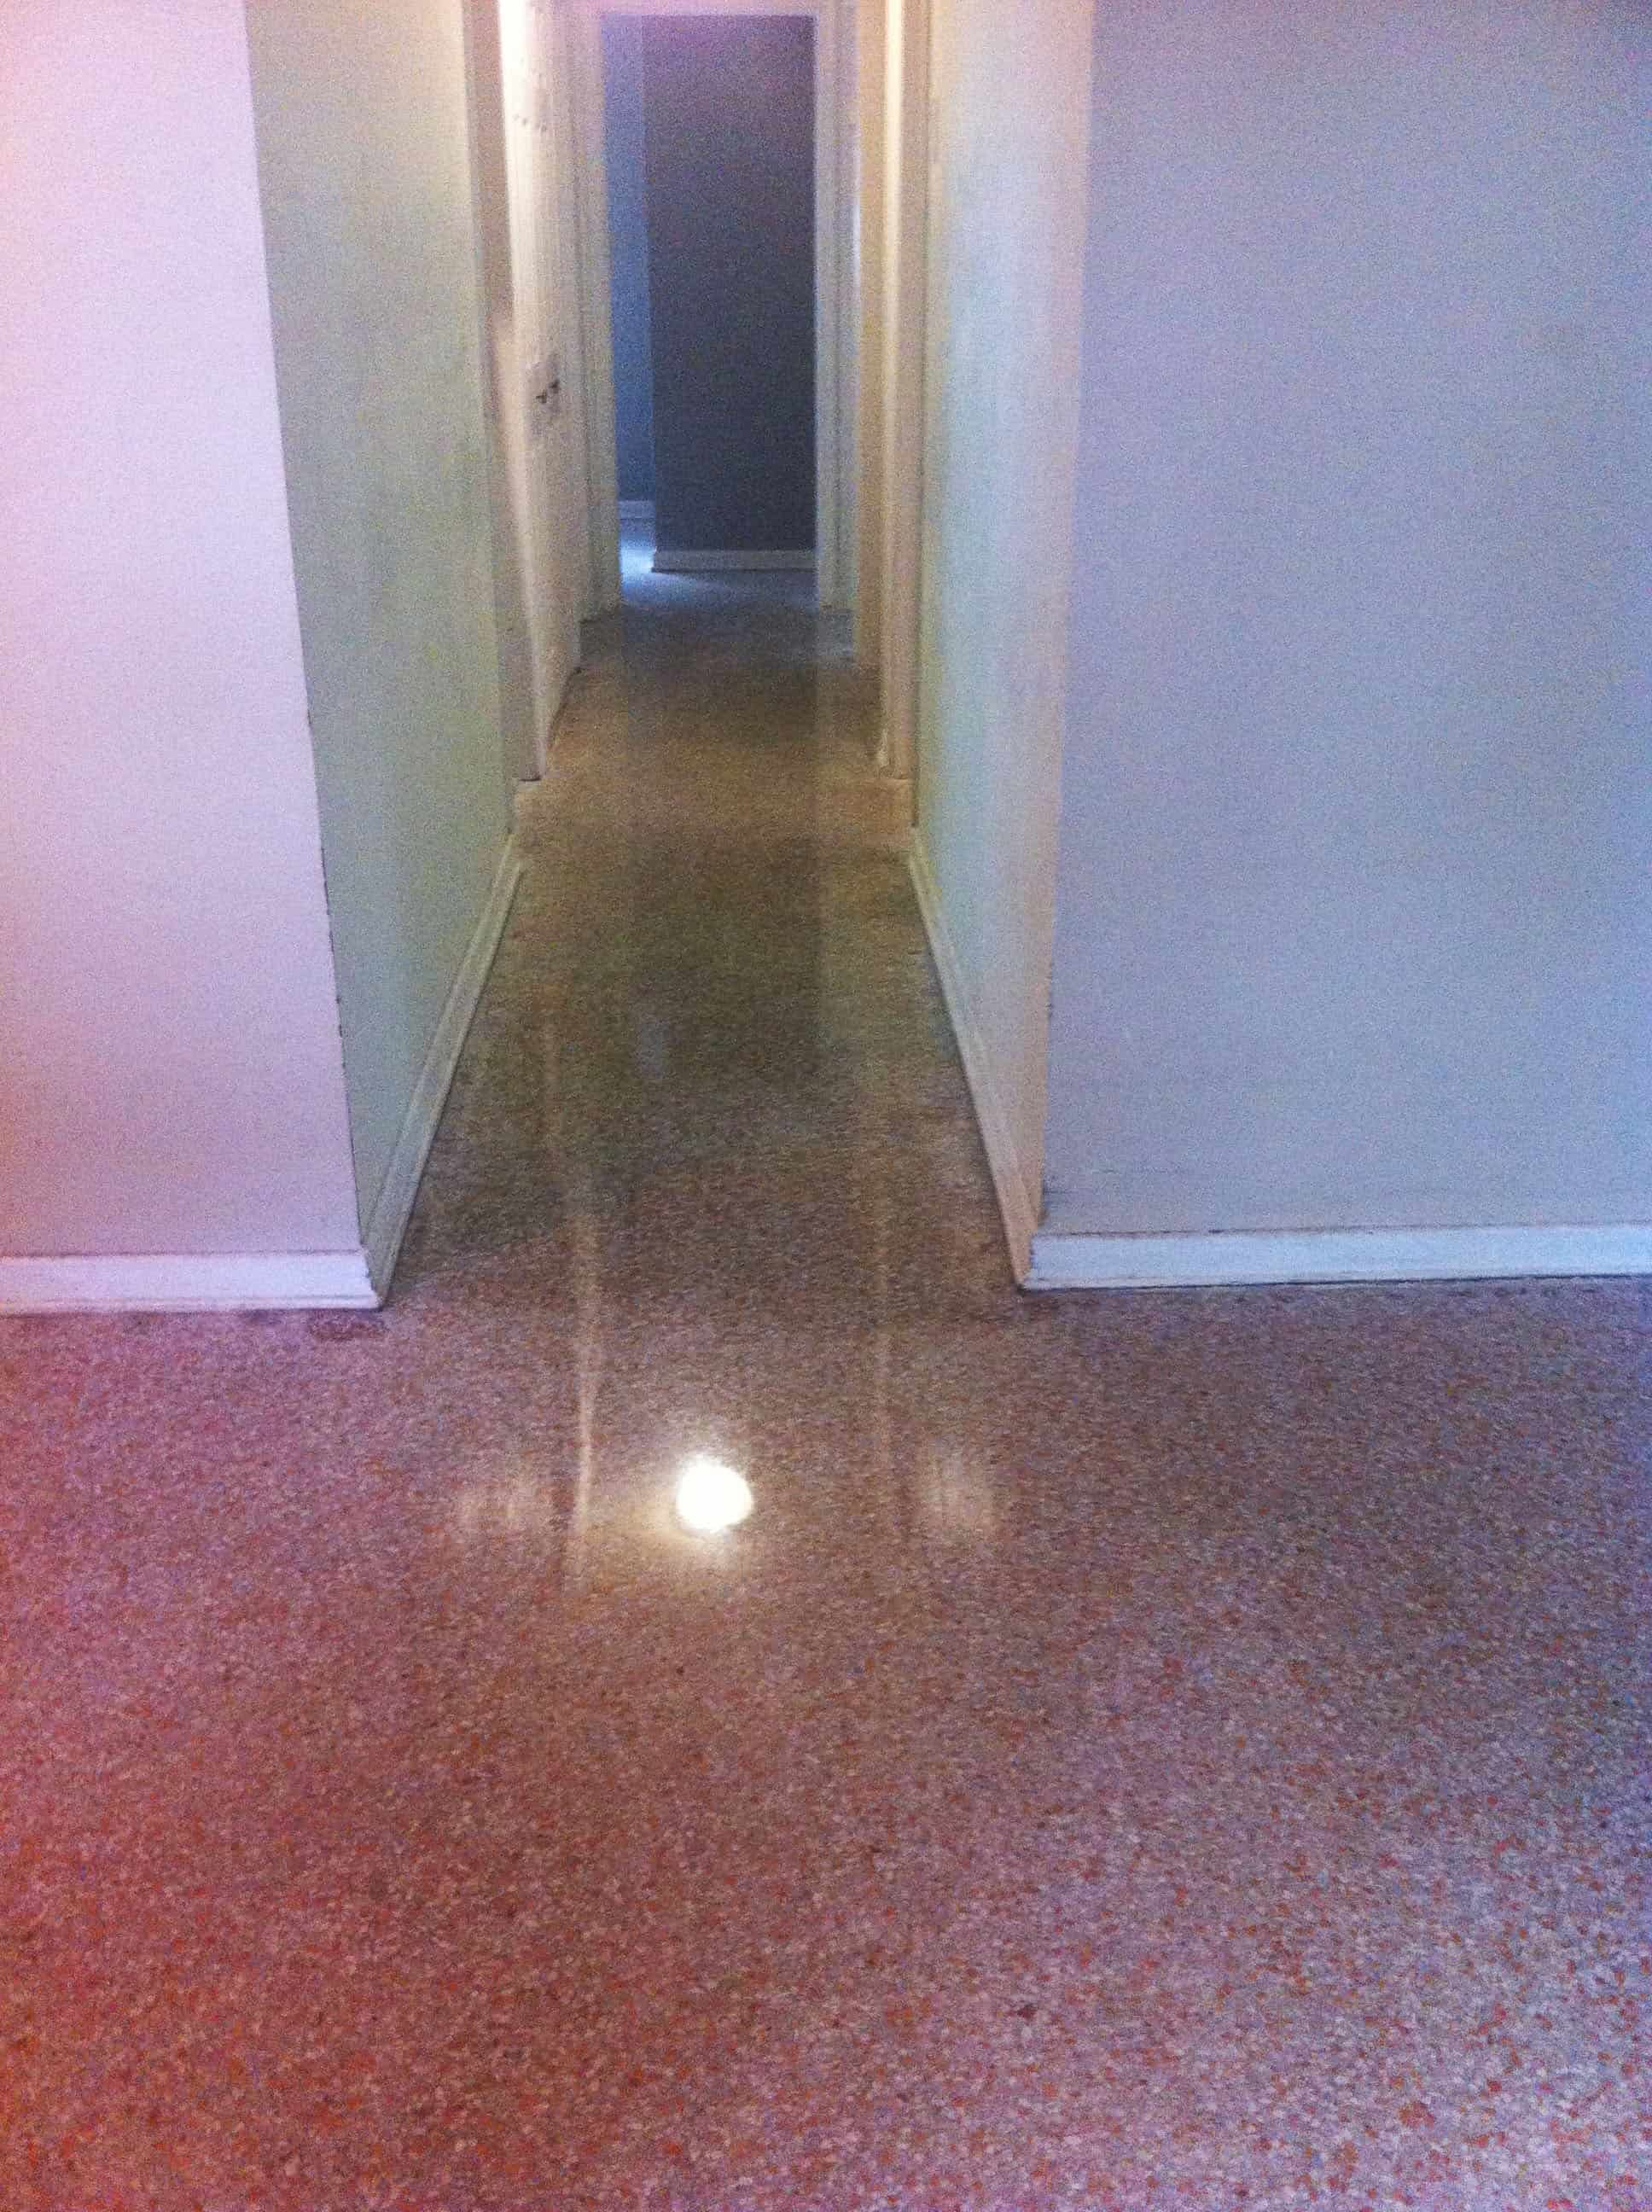 Terrazzo Pad Damage And Stain Removal